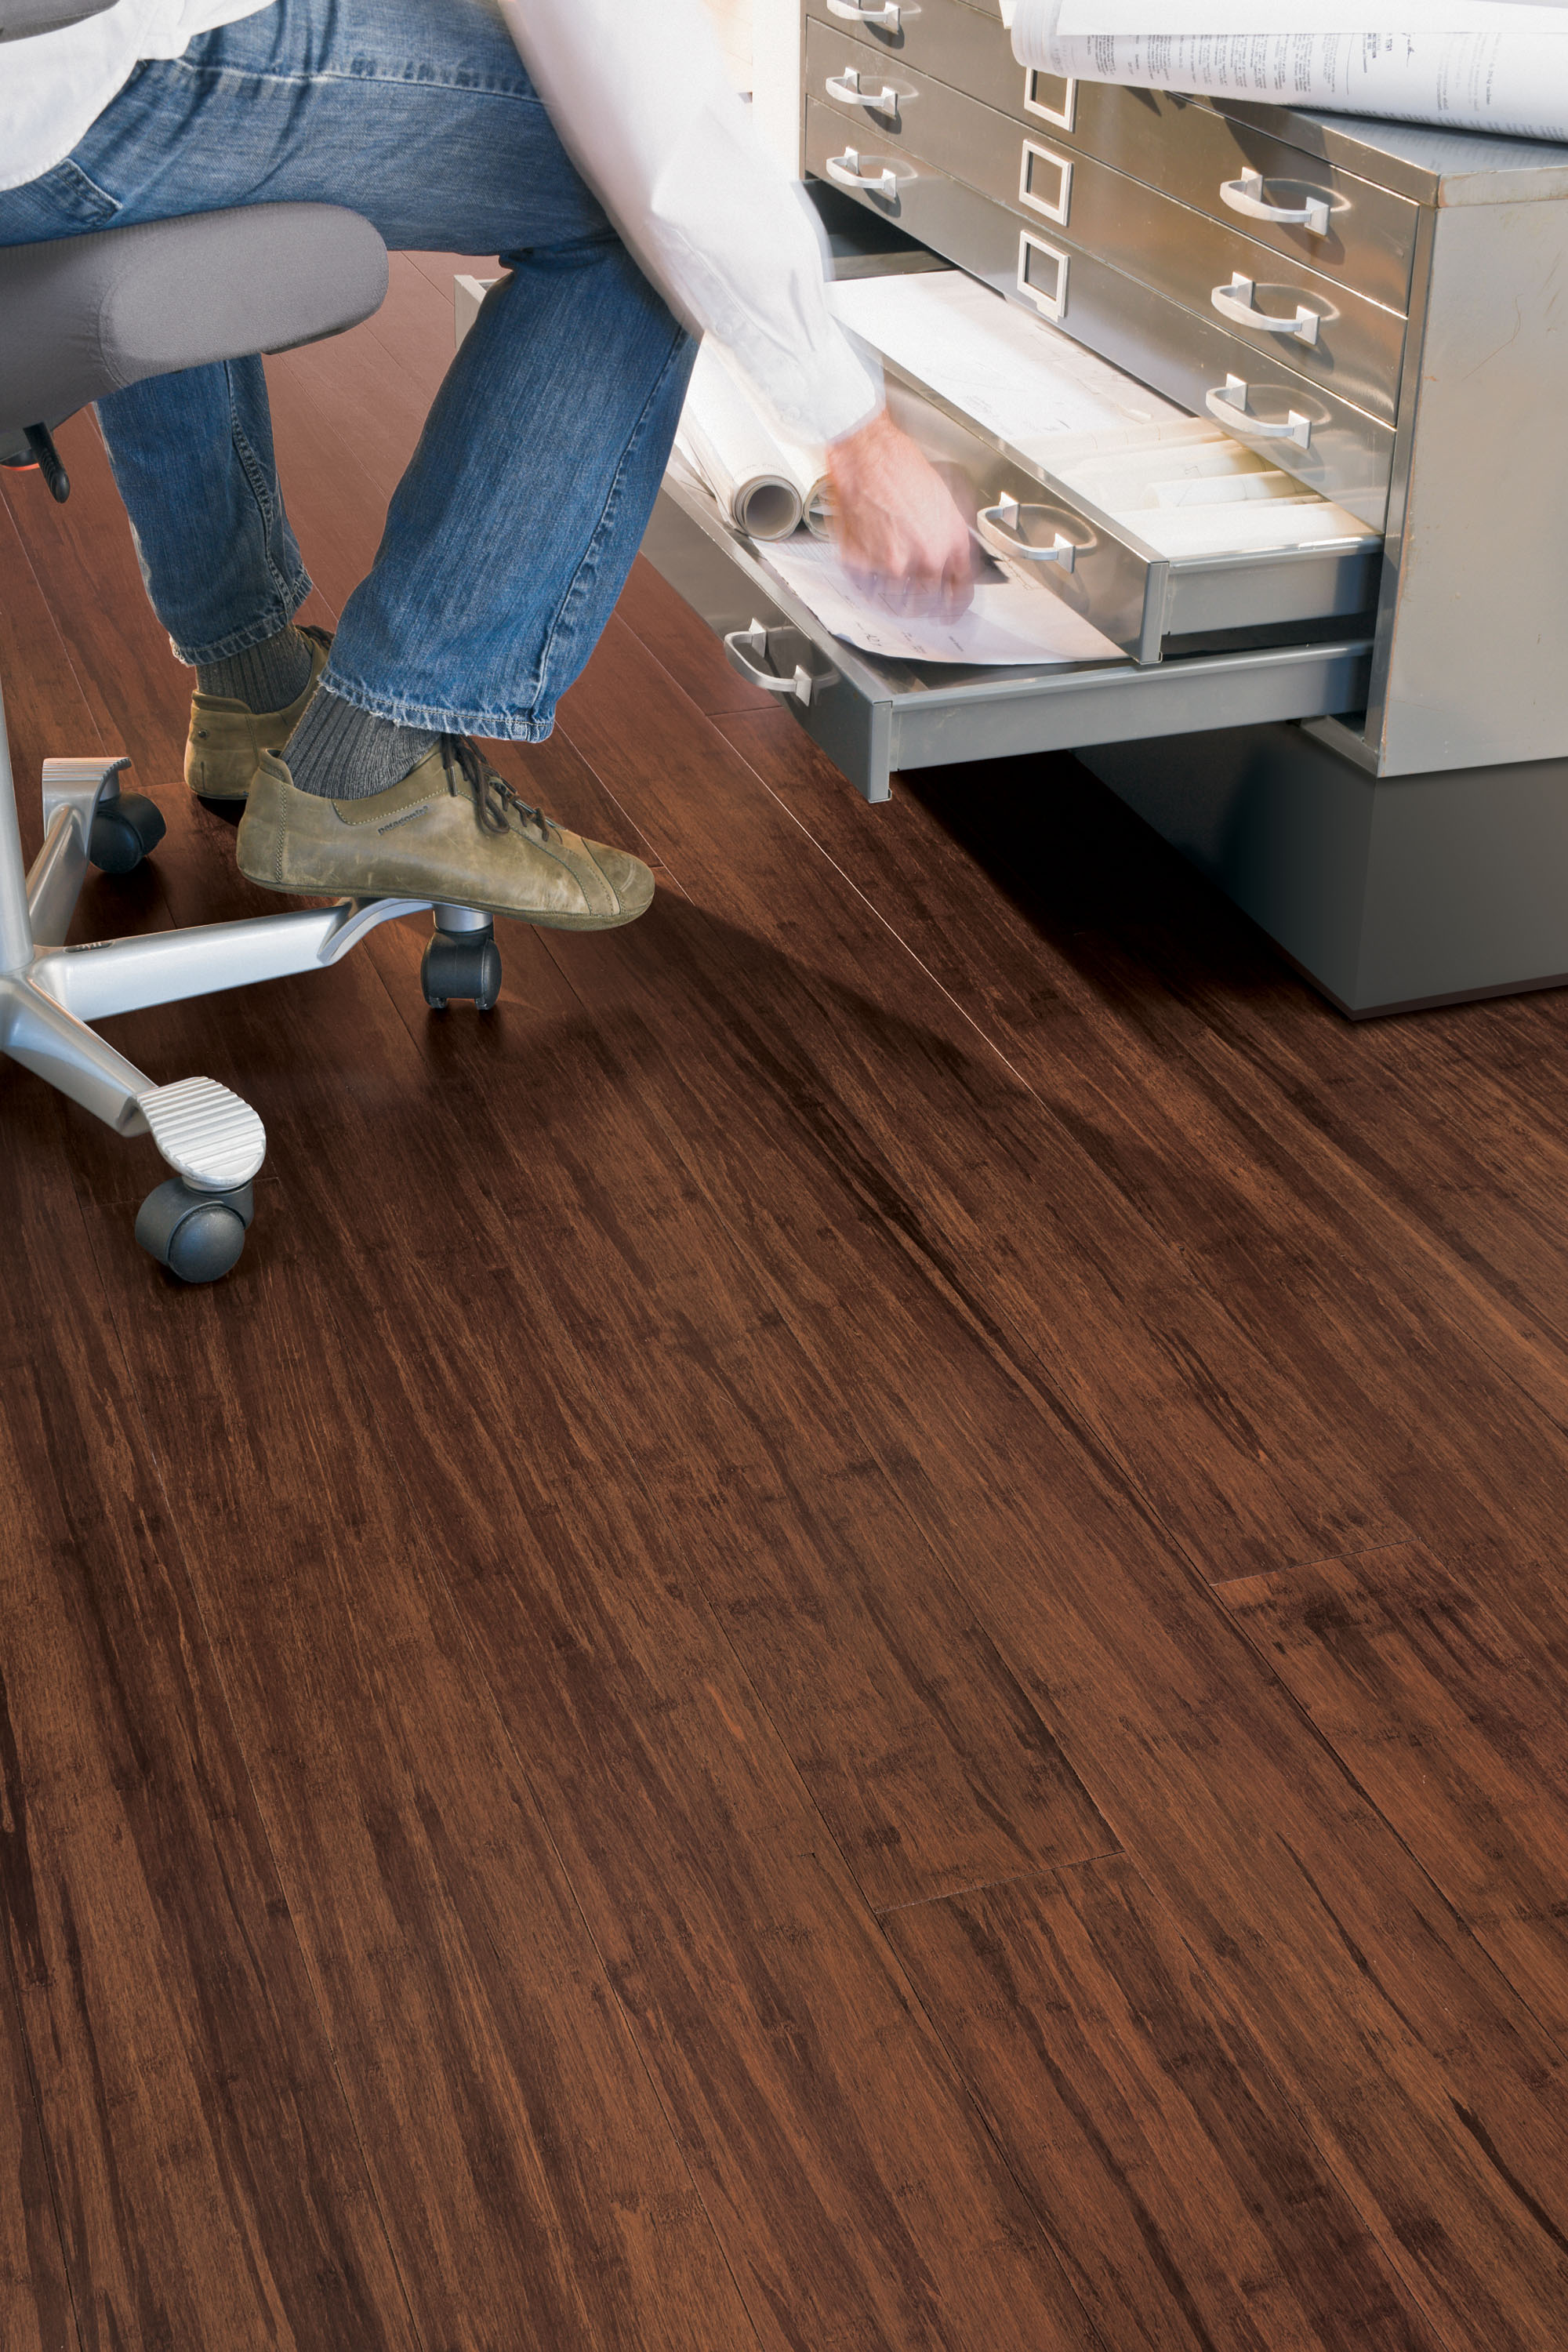 Decorating Inspiring Teragren Flooring And Panels For Home Design